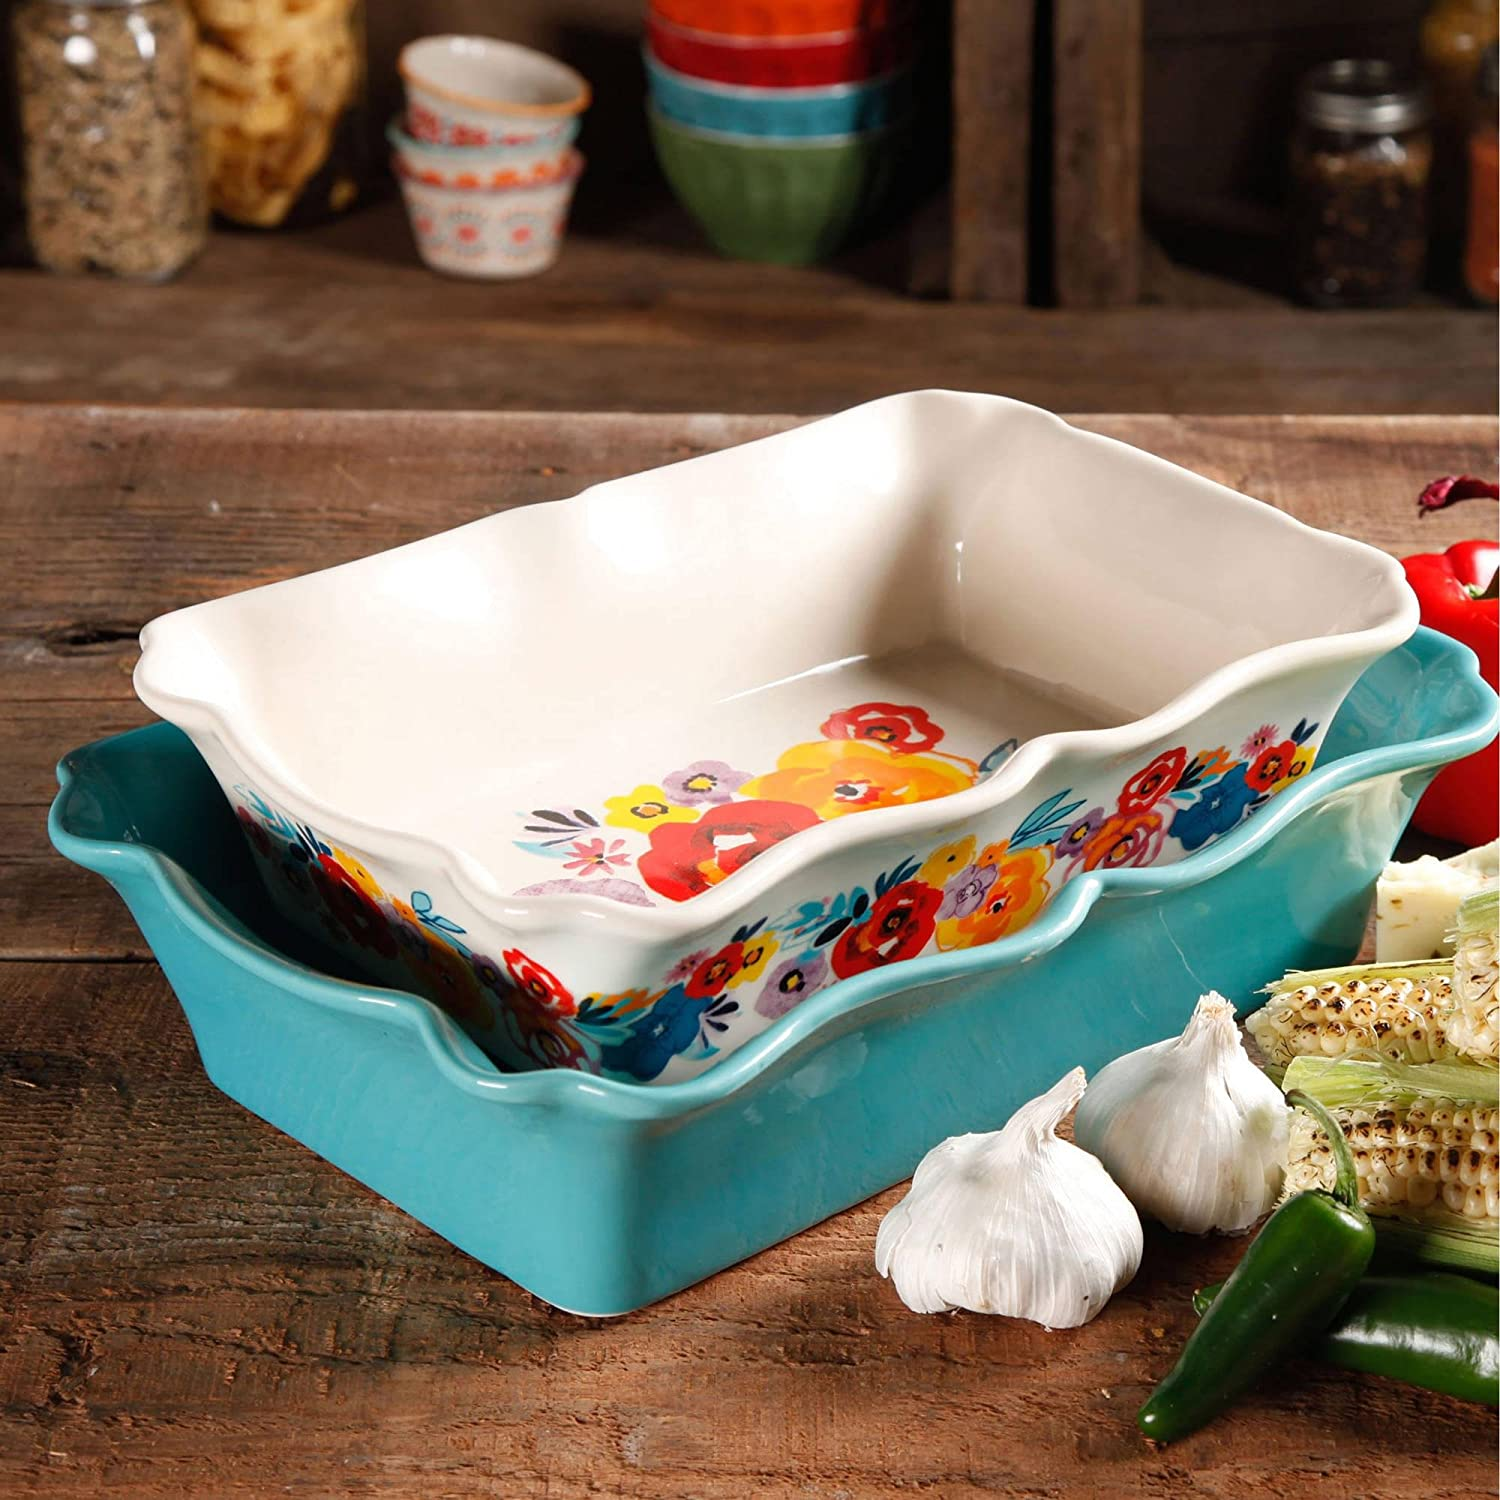 The Pioneer Woman Flea Market 2-Piece Decorated Rectangular Ruffle Top Ceramic Bakeware Set, turquoise & floral baker